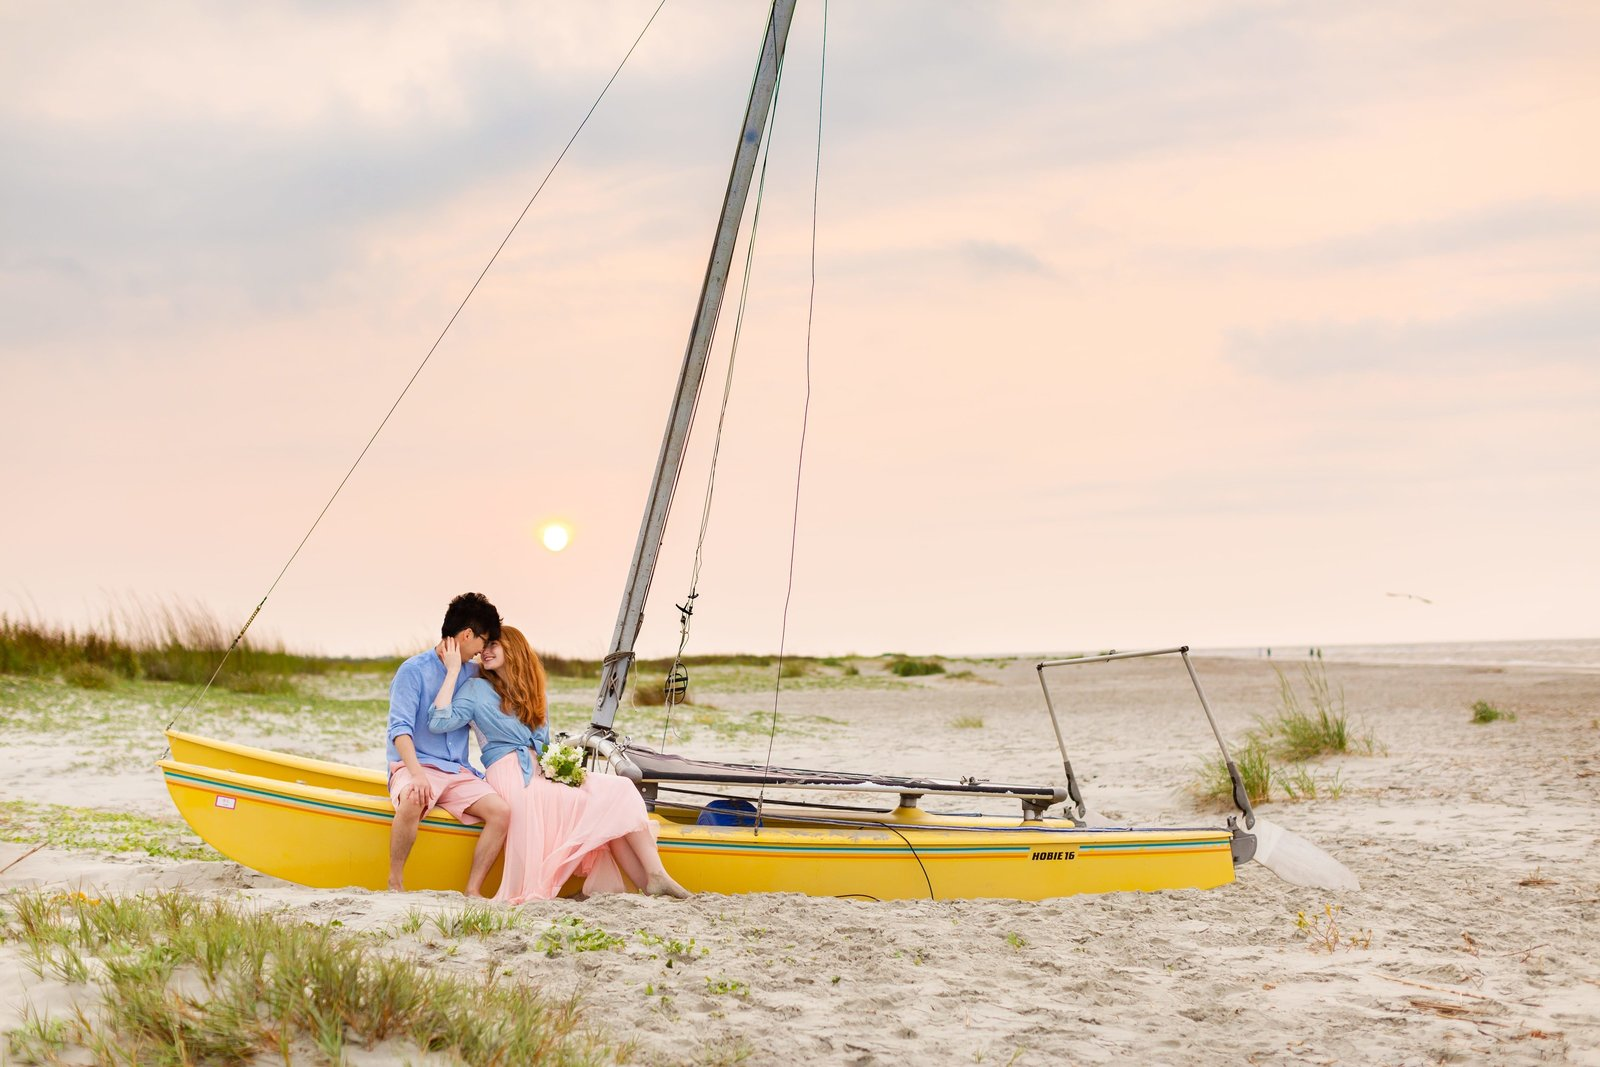 couple poses at the charleston  beach on a bright yellow sailboat while sharing a laugh together